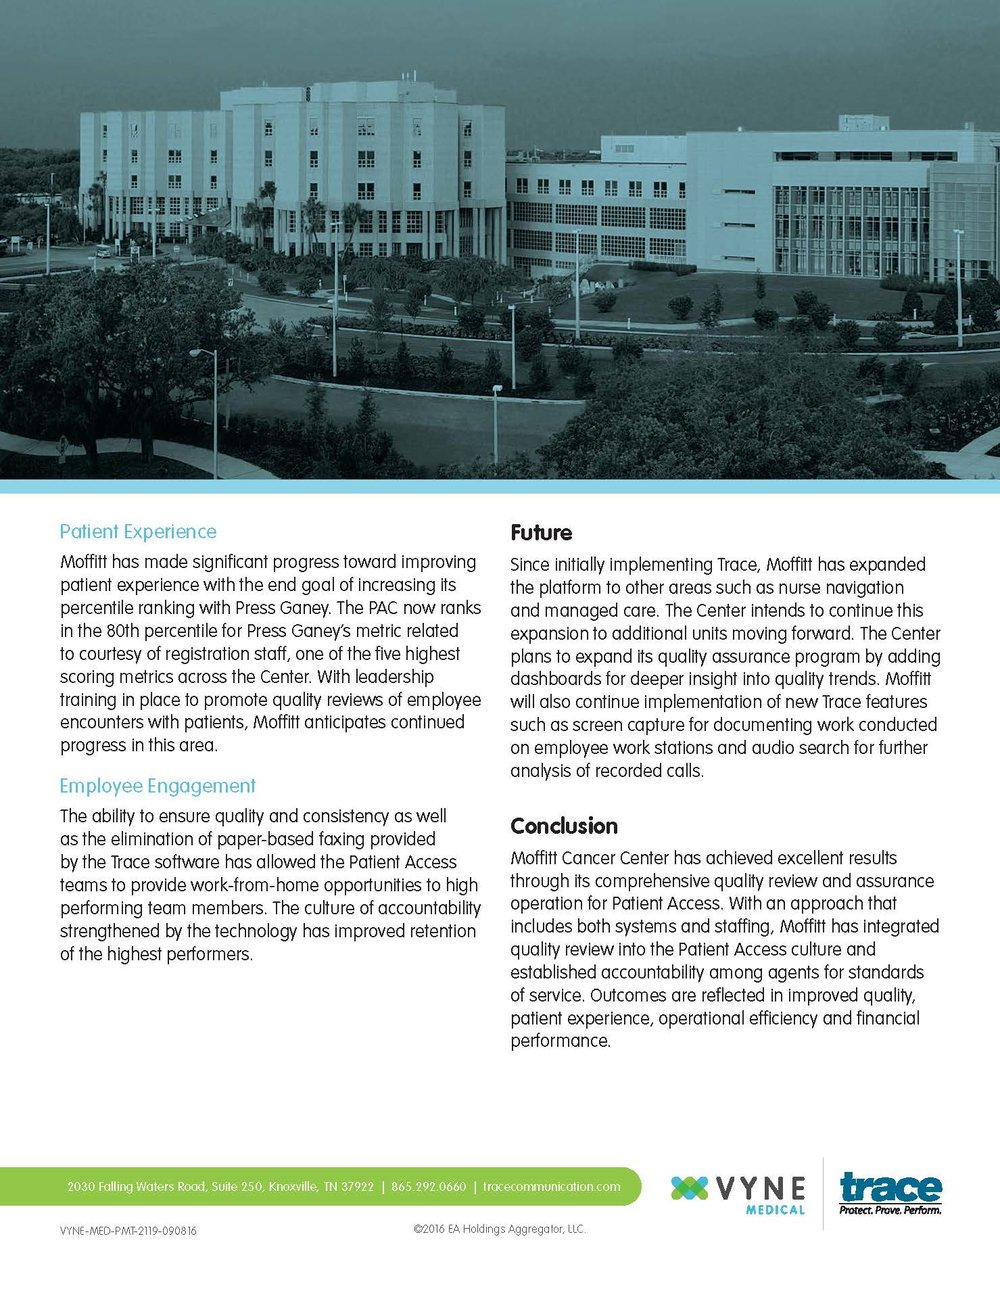 case-study-Moffitt-Cancer-Center_Page_4.jpg